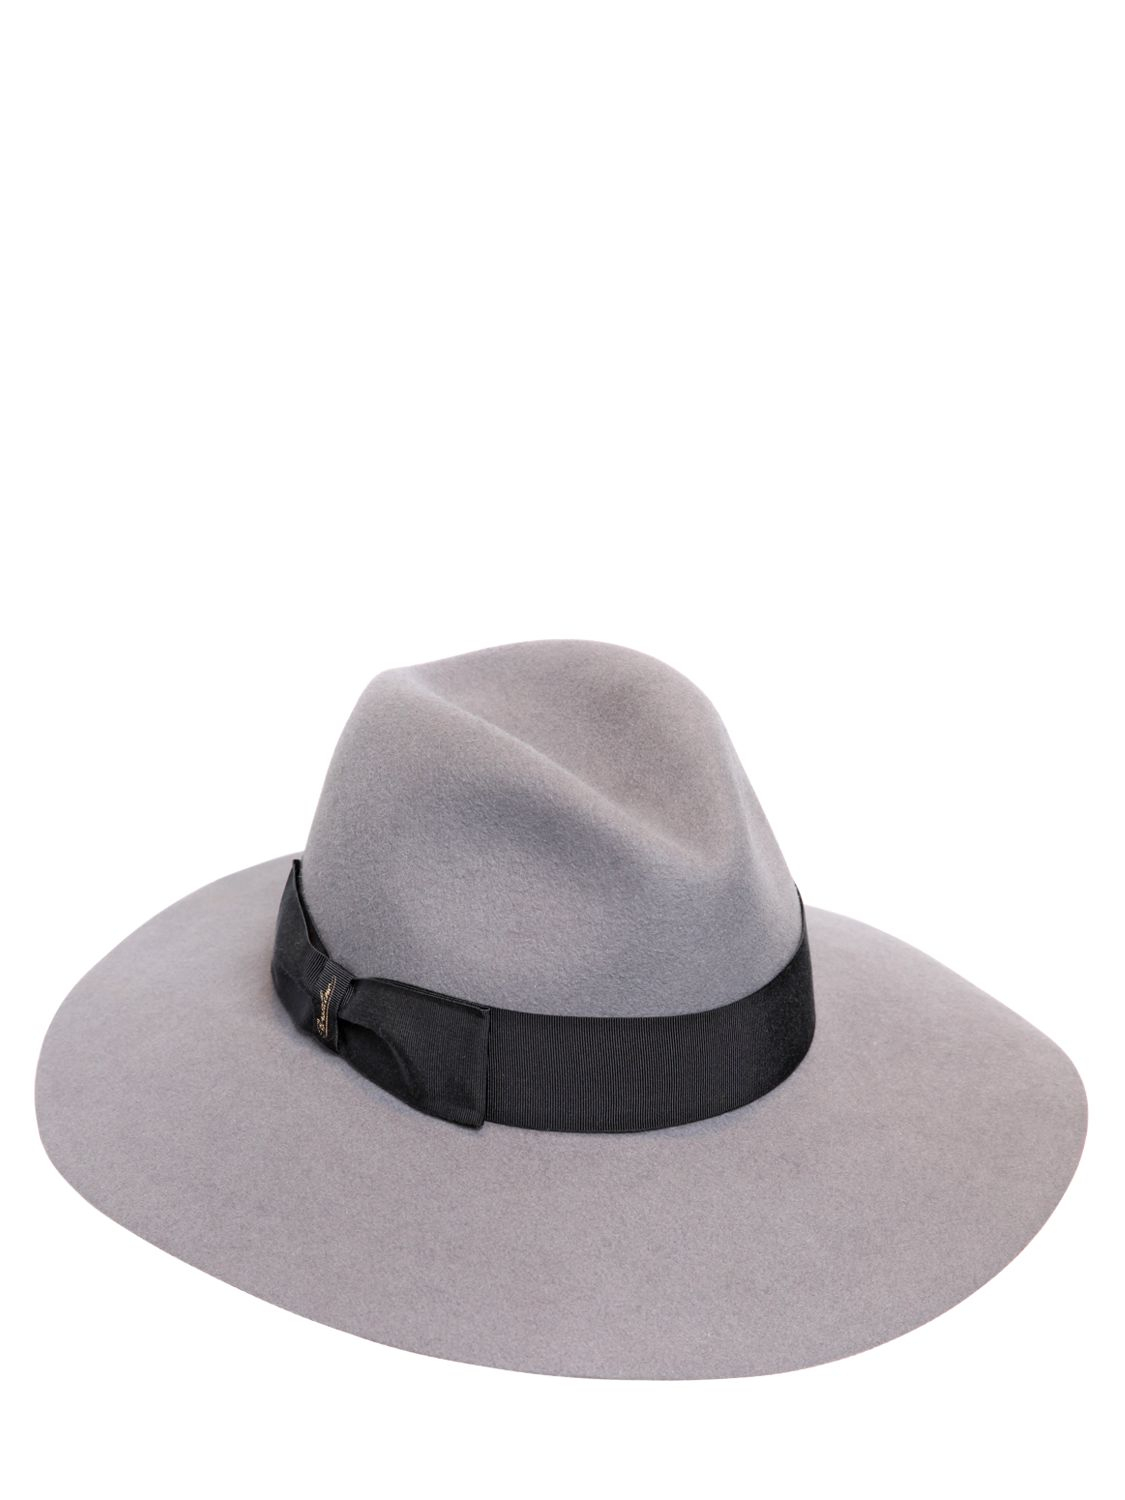 be446f50f82 Lyst - Borsalino Lapin Fur Felt Wide Brim Hat in Gray